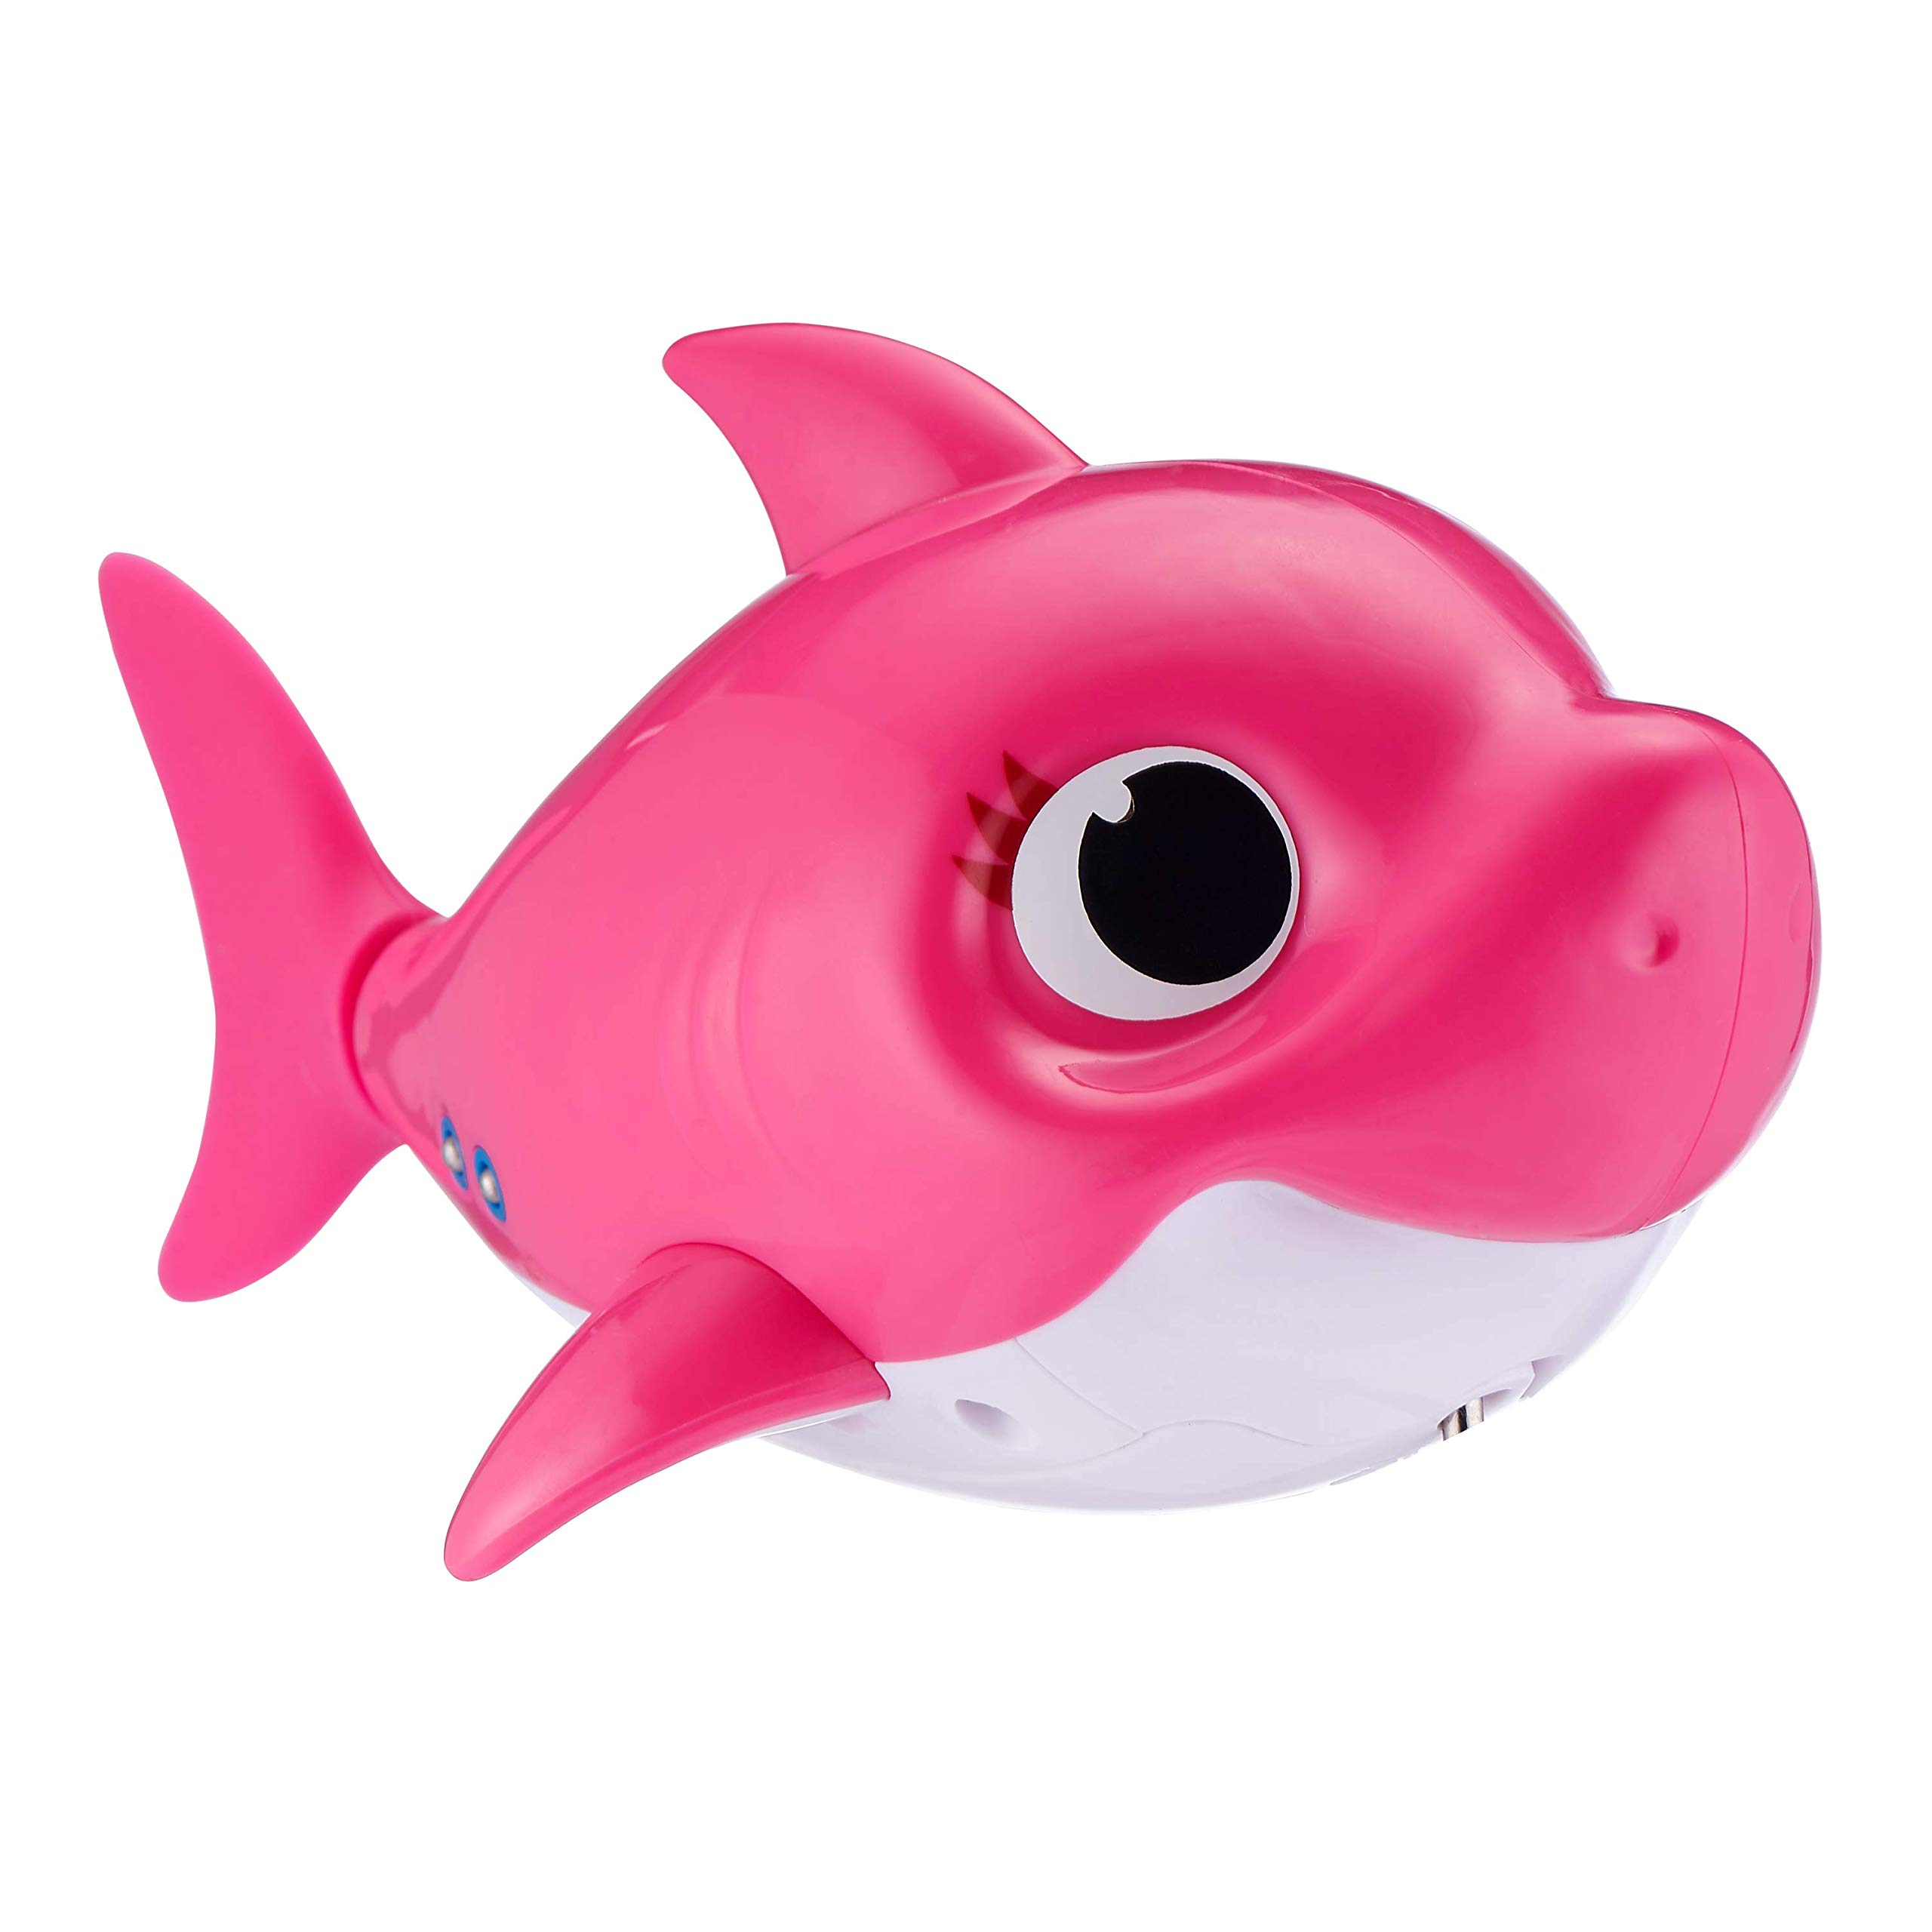 Robo Alive Junior Baby Shark Battery-Powered Sing and Swim Bath Toy by ZURU - Mommy Shark (Pink) by Robo Alive Junior (Image #3)